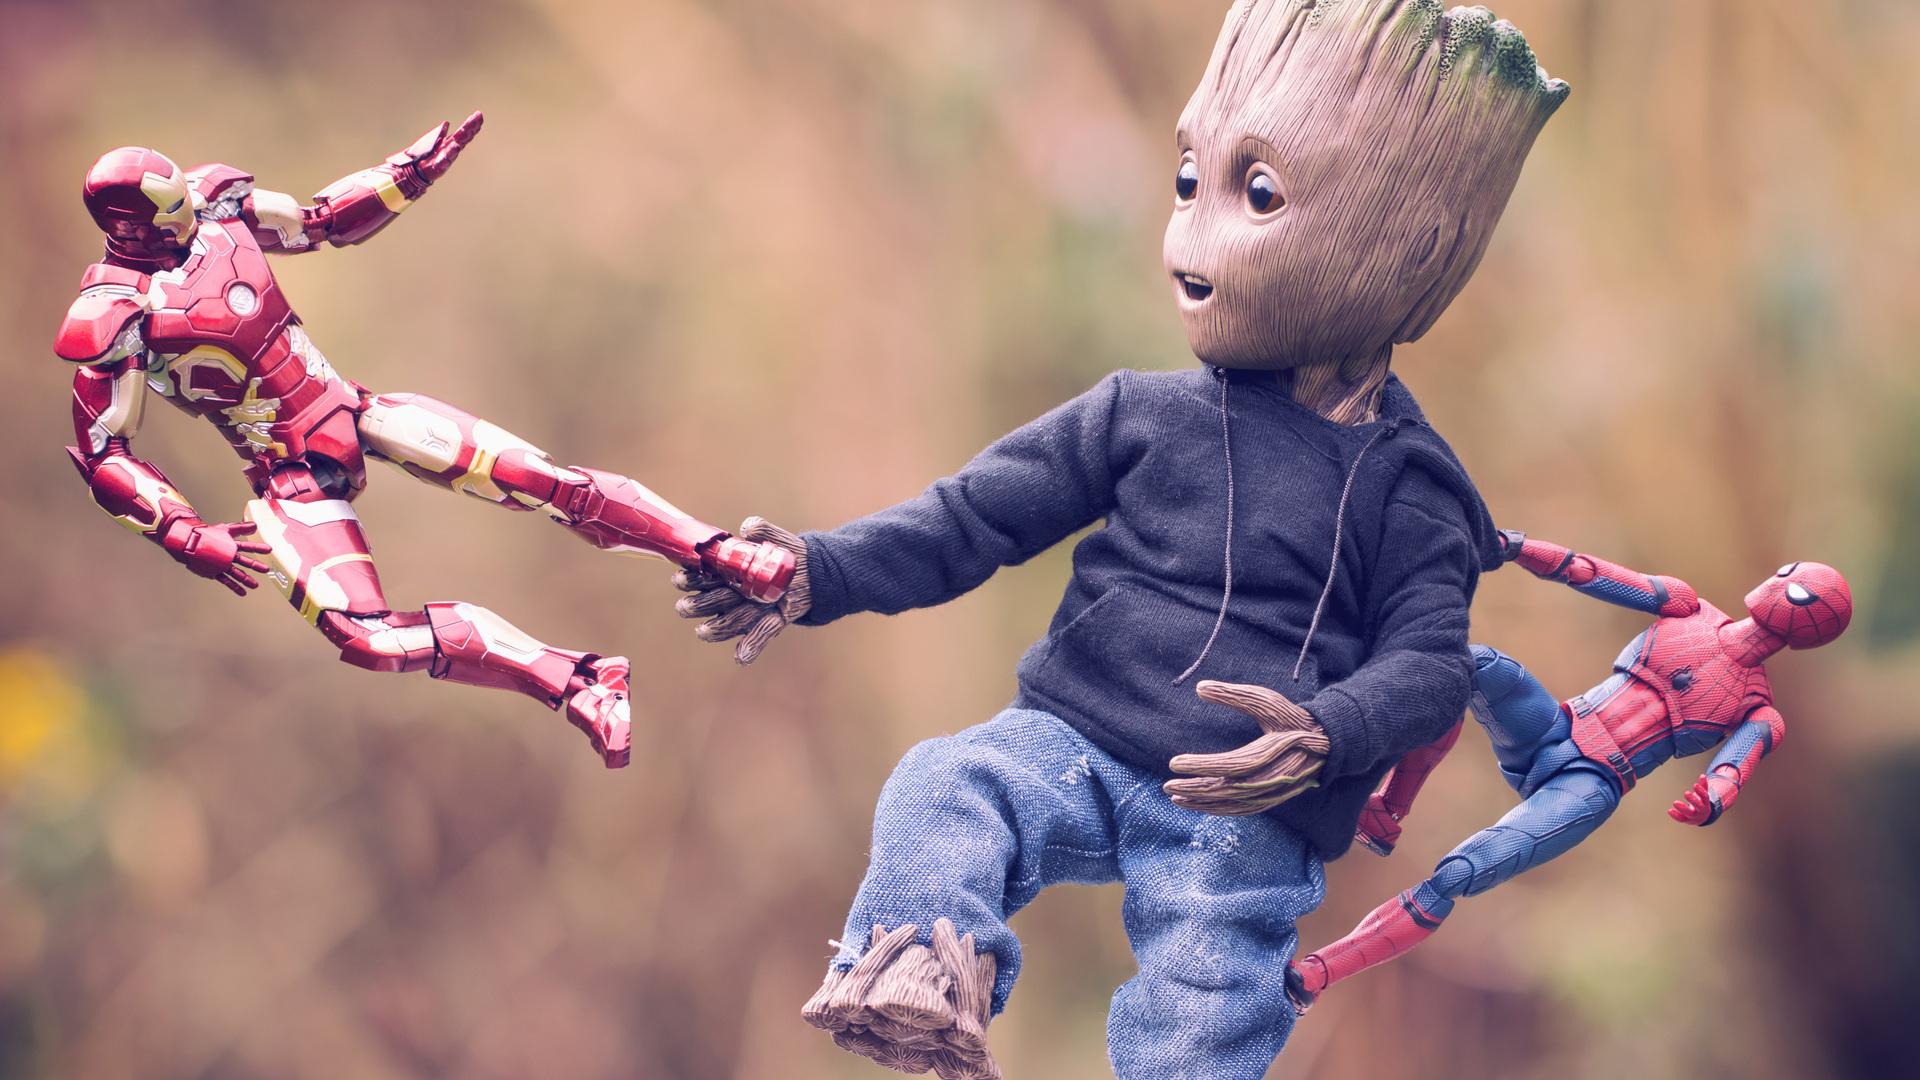 1920x1080 Baby Groot Iron Man And Spiderman Laptop Full HD